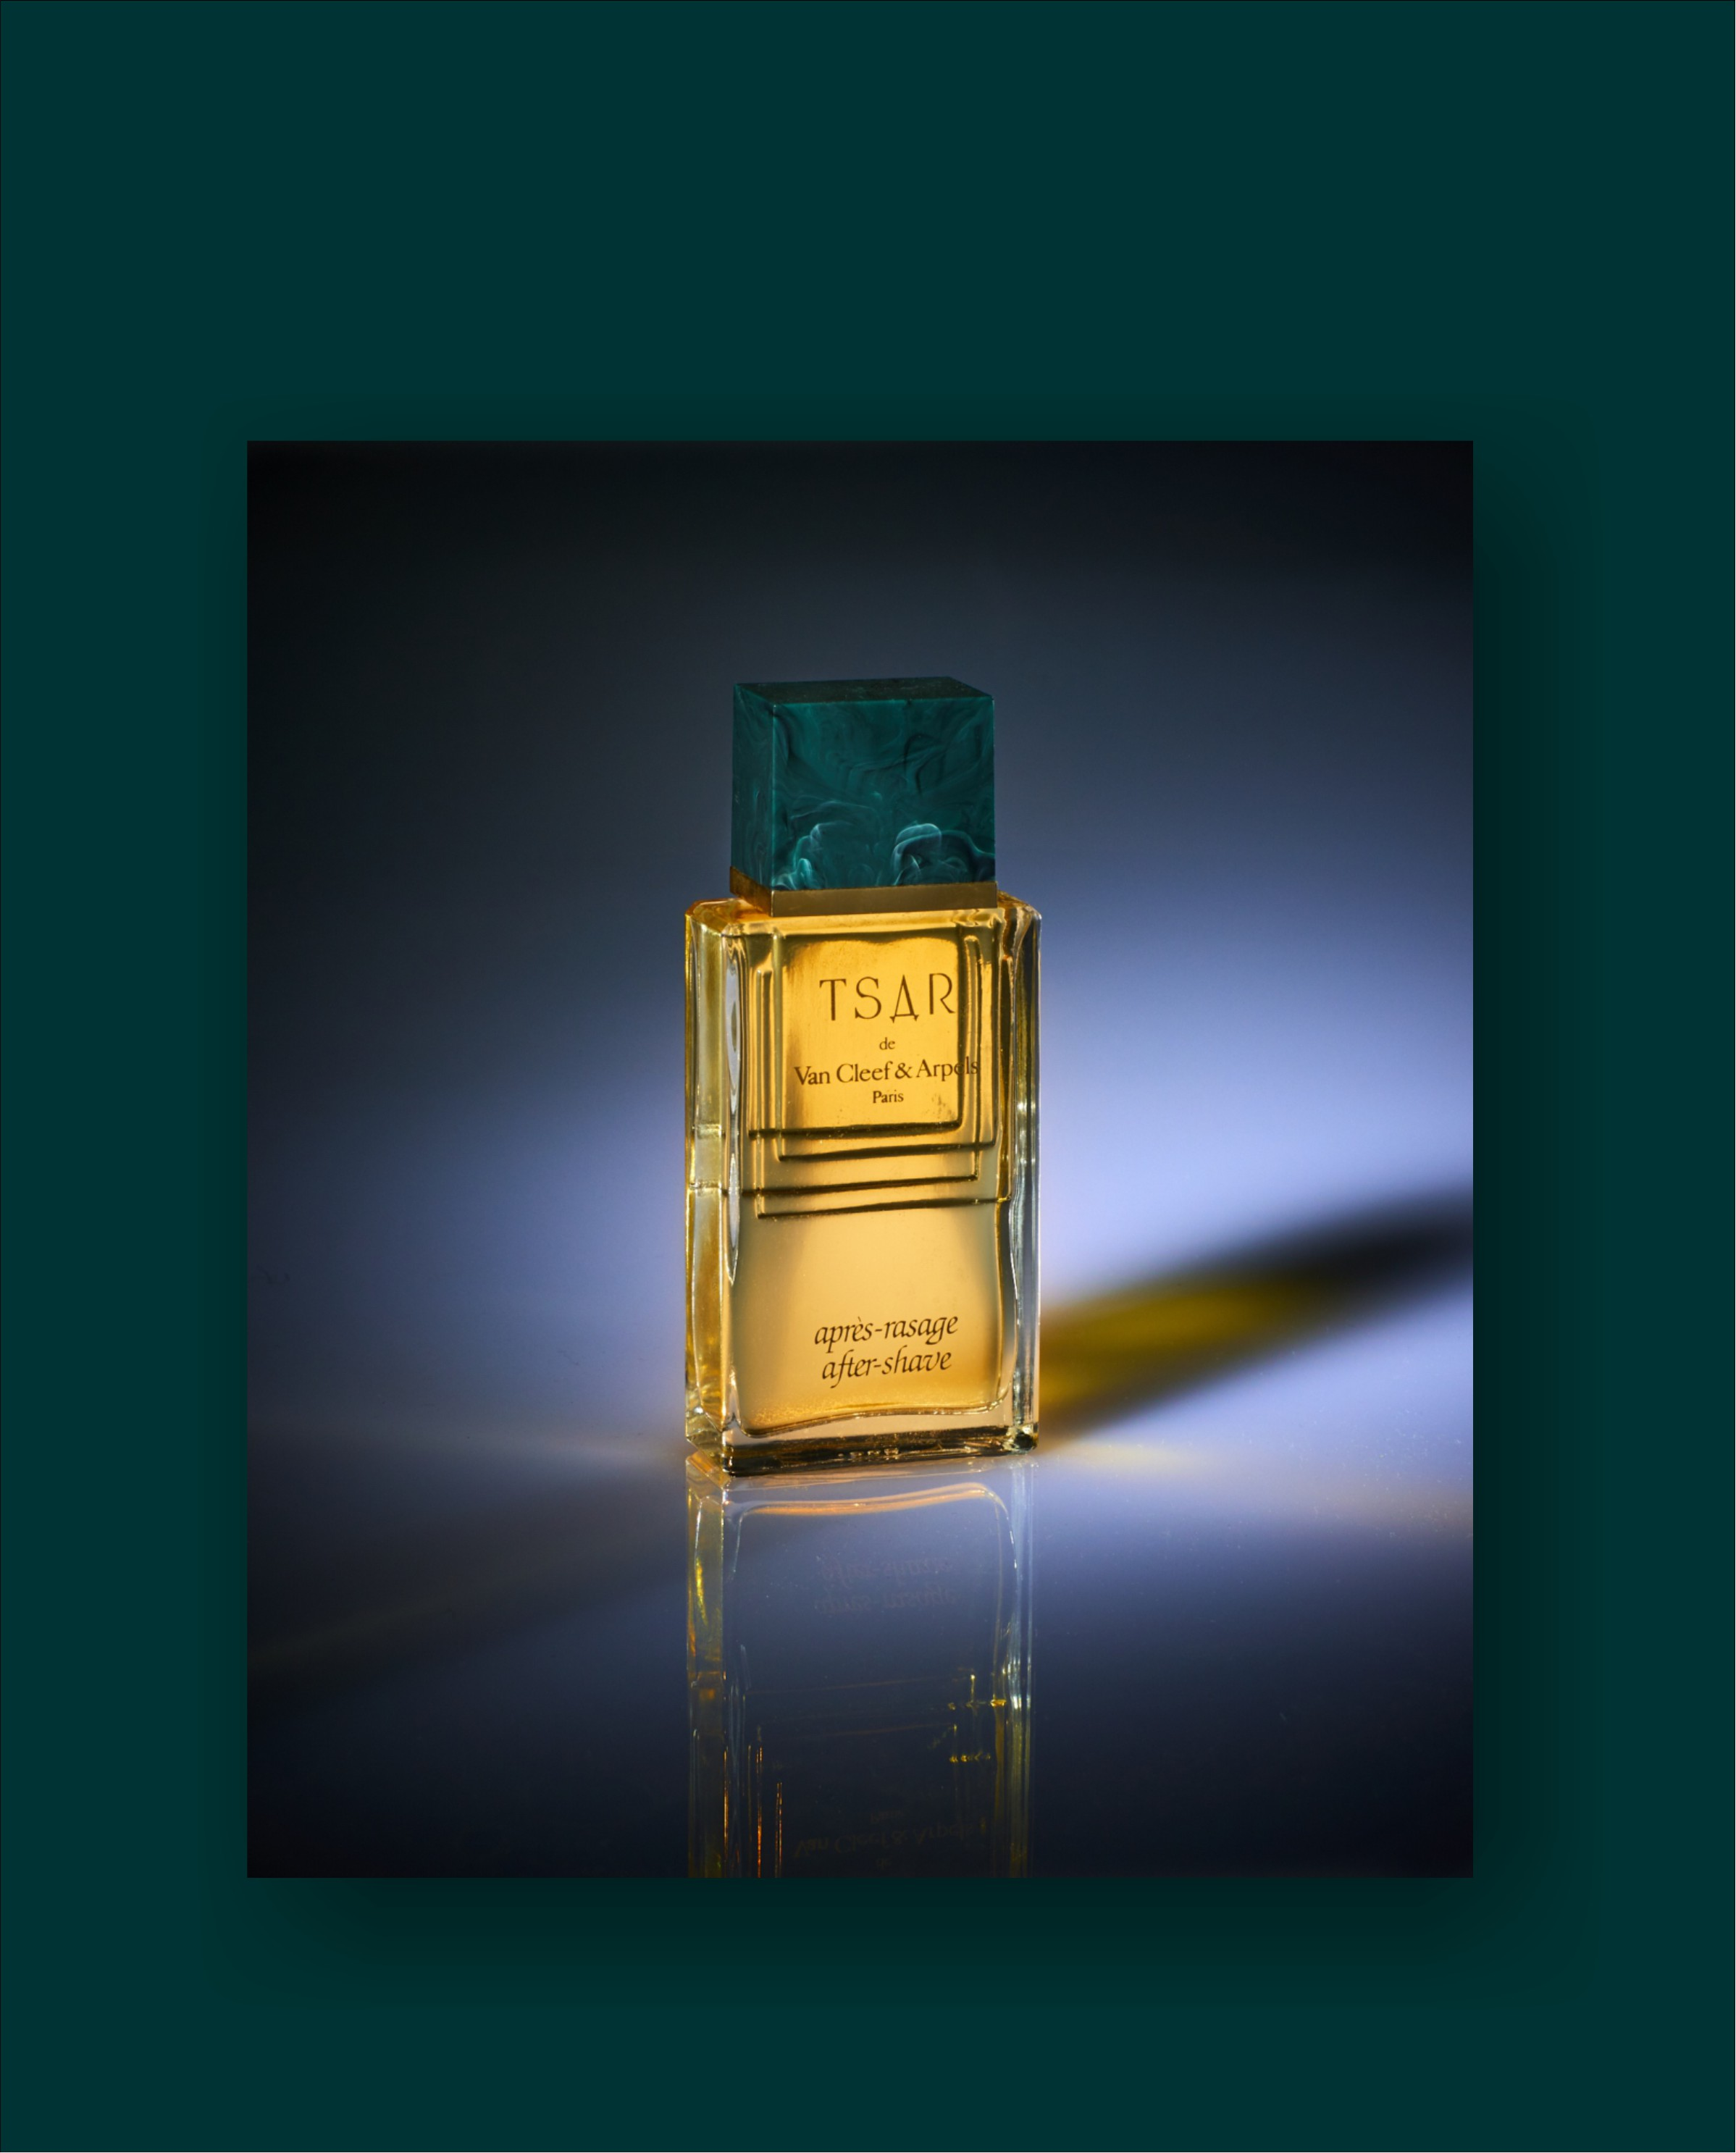 Tsar after shave - Van Cleef & Arpels  Paris with dramatic lighting for advertising